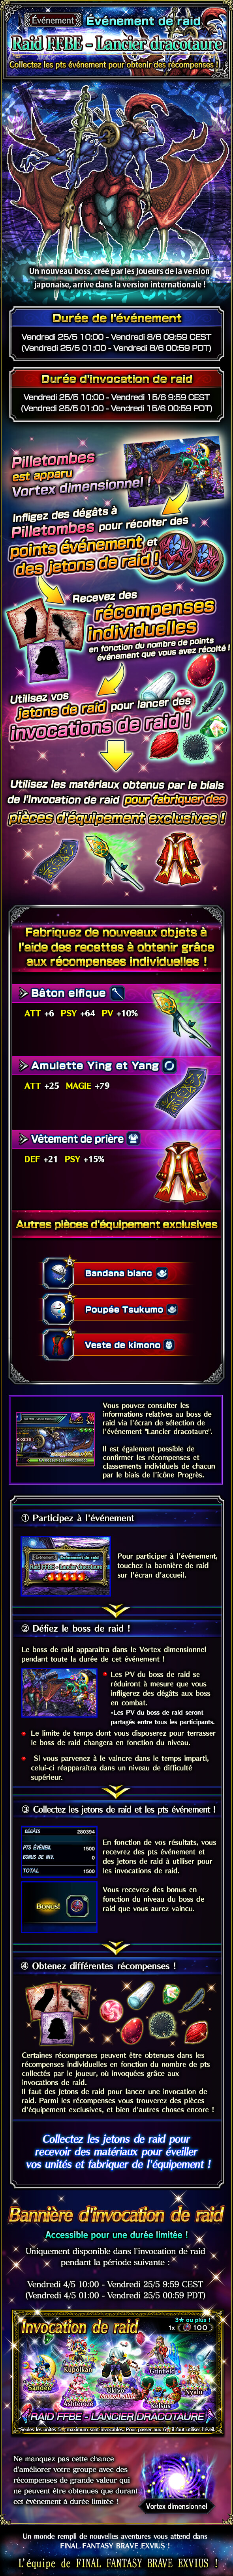 Evenement Raid FFBE - Lancier Dragotaure - du 25/05 au 08/06 Raid2ndJPOriginalsUkiyo